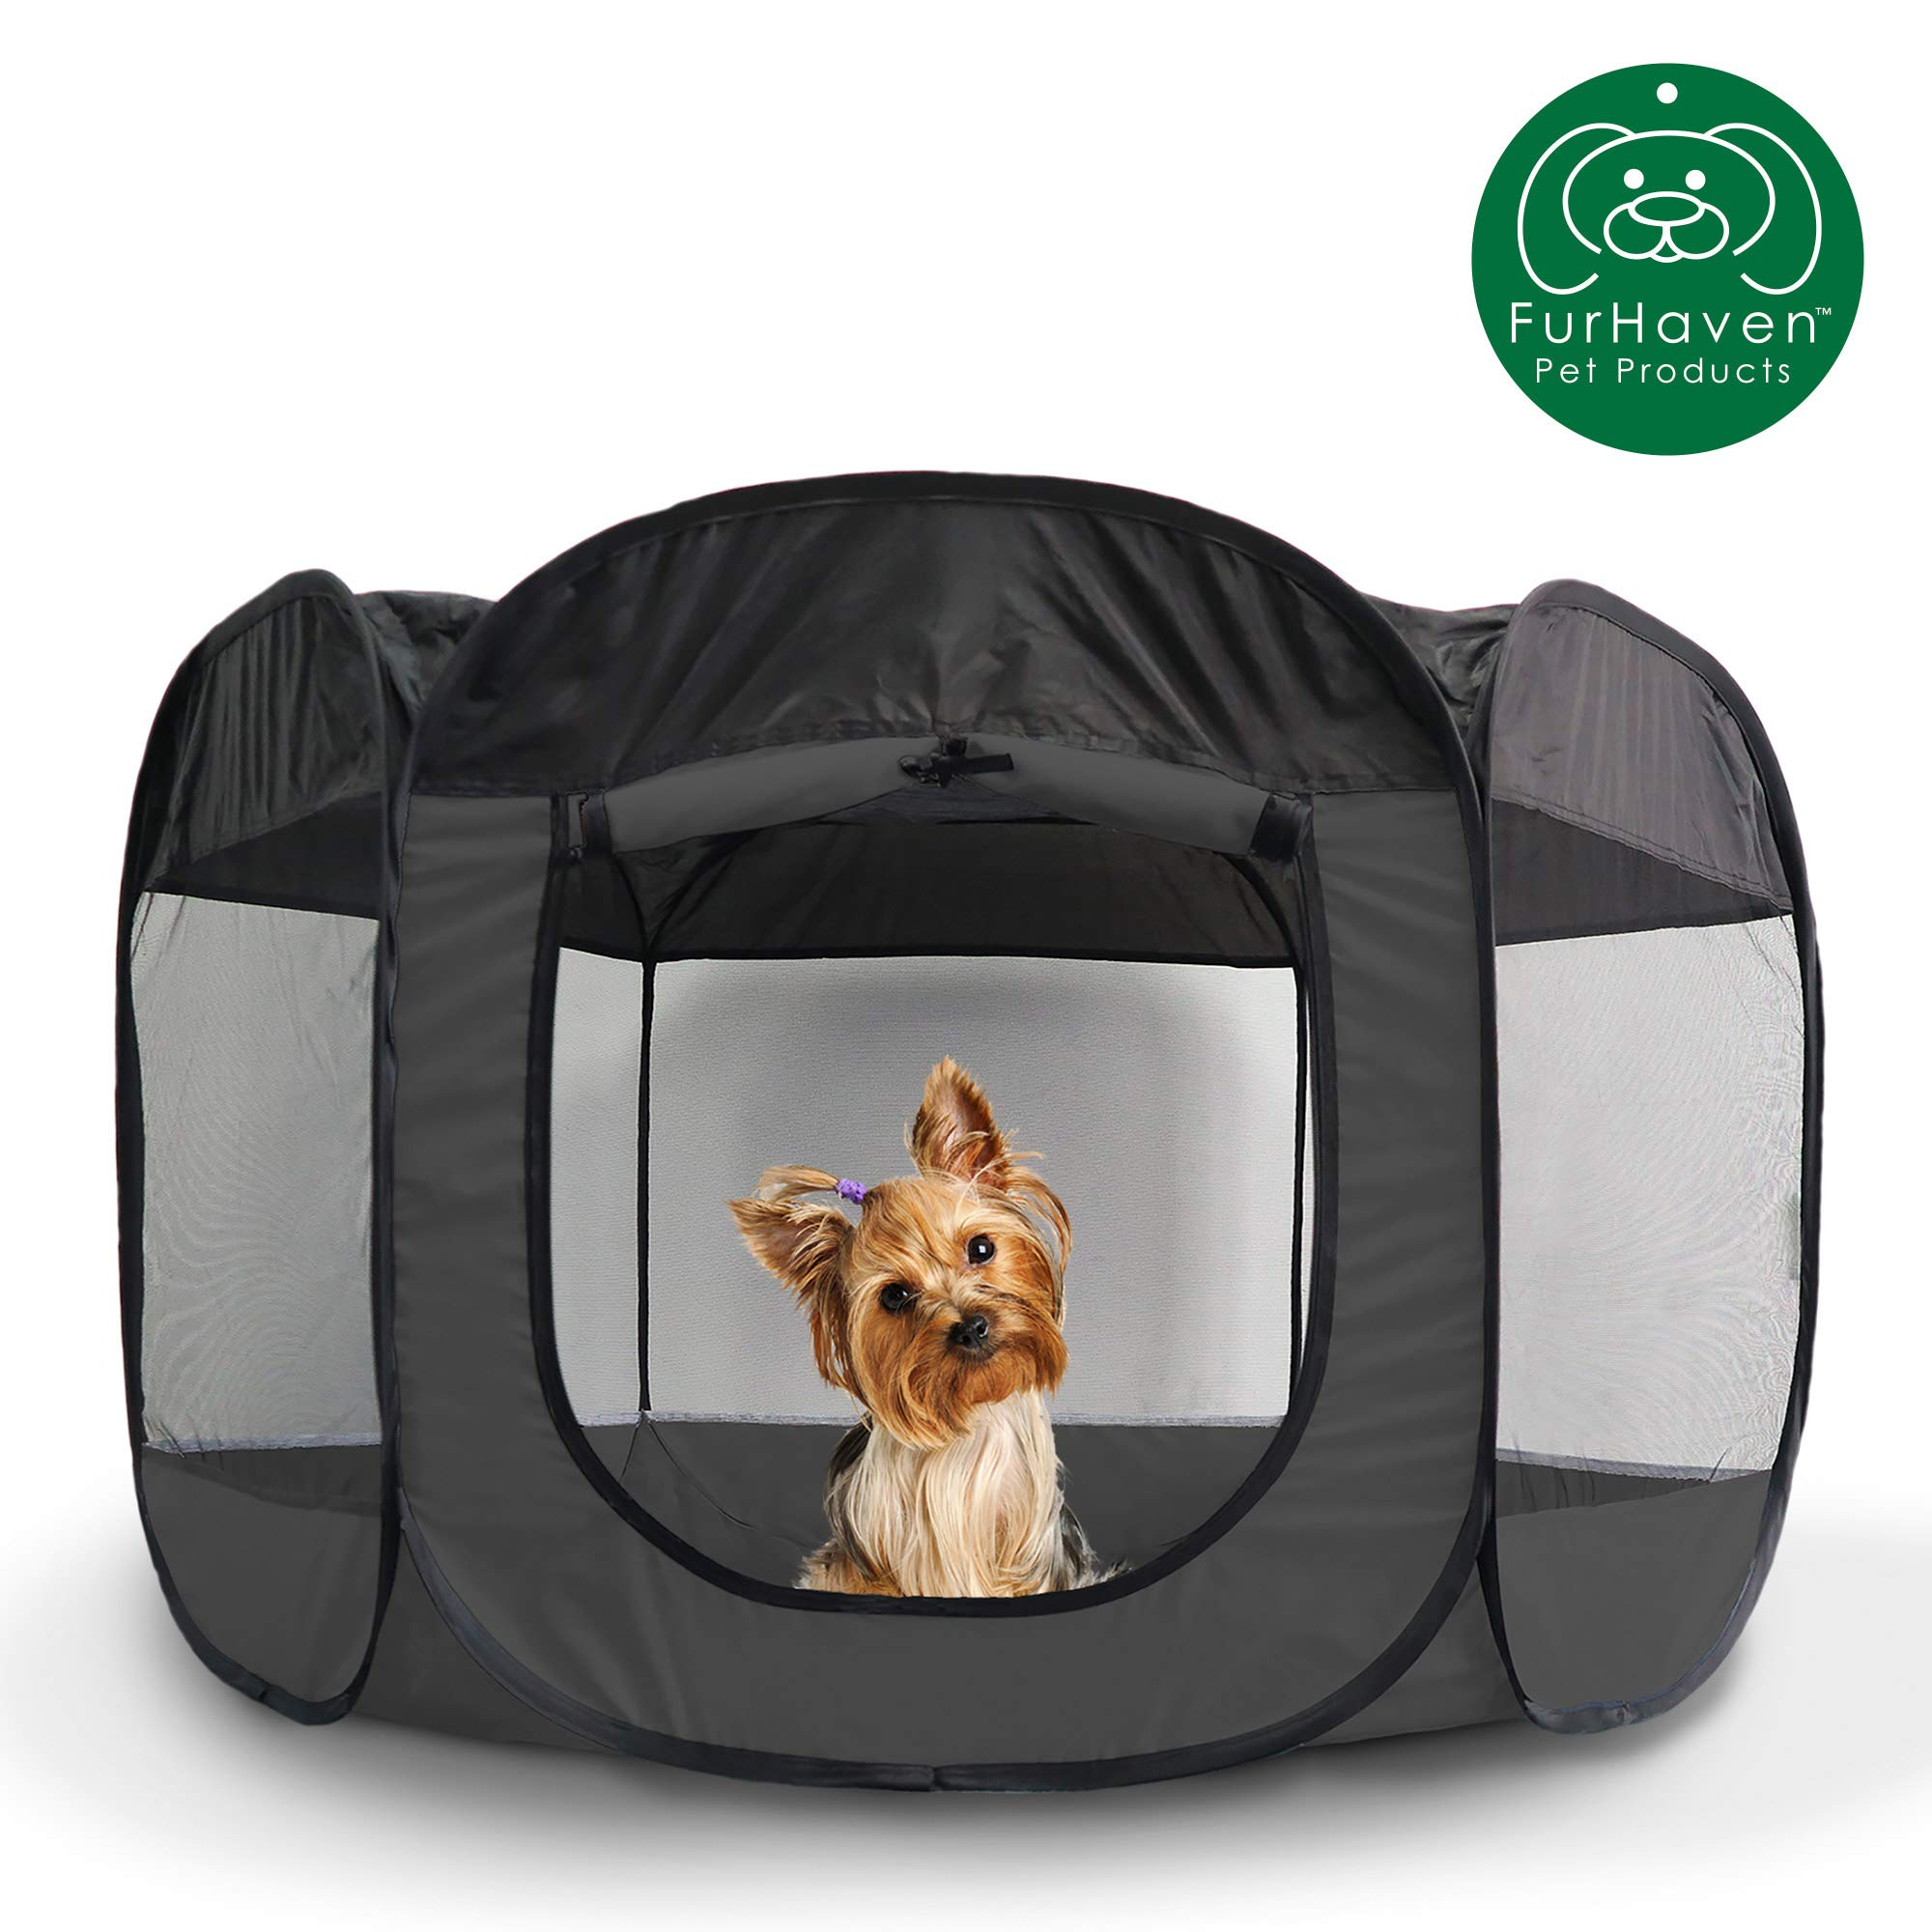 Furhaven Pet Playpen | Indoor/Outdoor Mesh Open-Air Playpen & Exercise Pen Tent House Playground for Dogs & Cats, Gray, Small by Furhaven